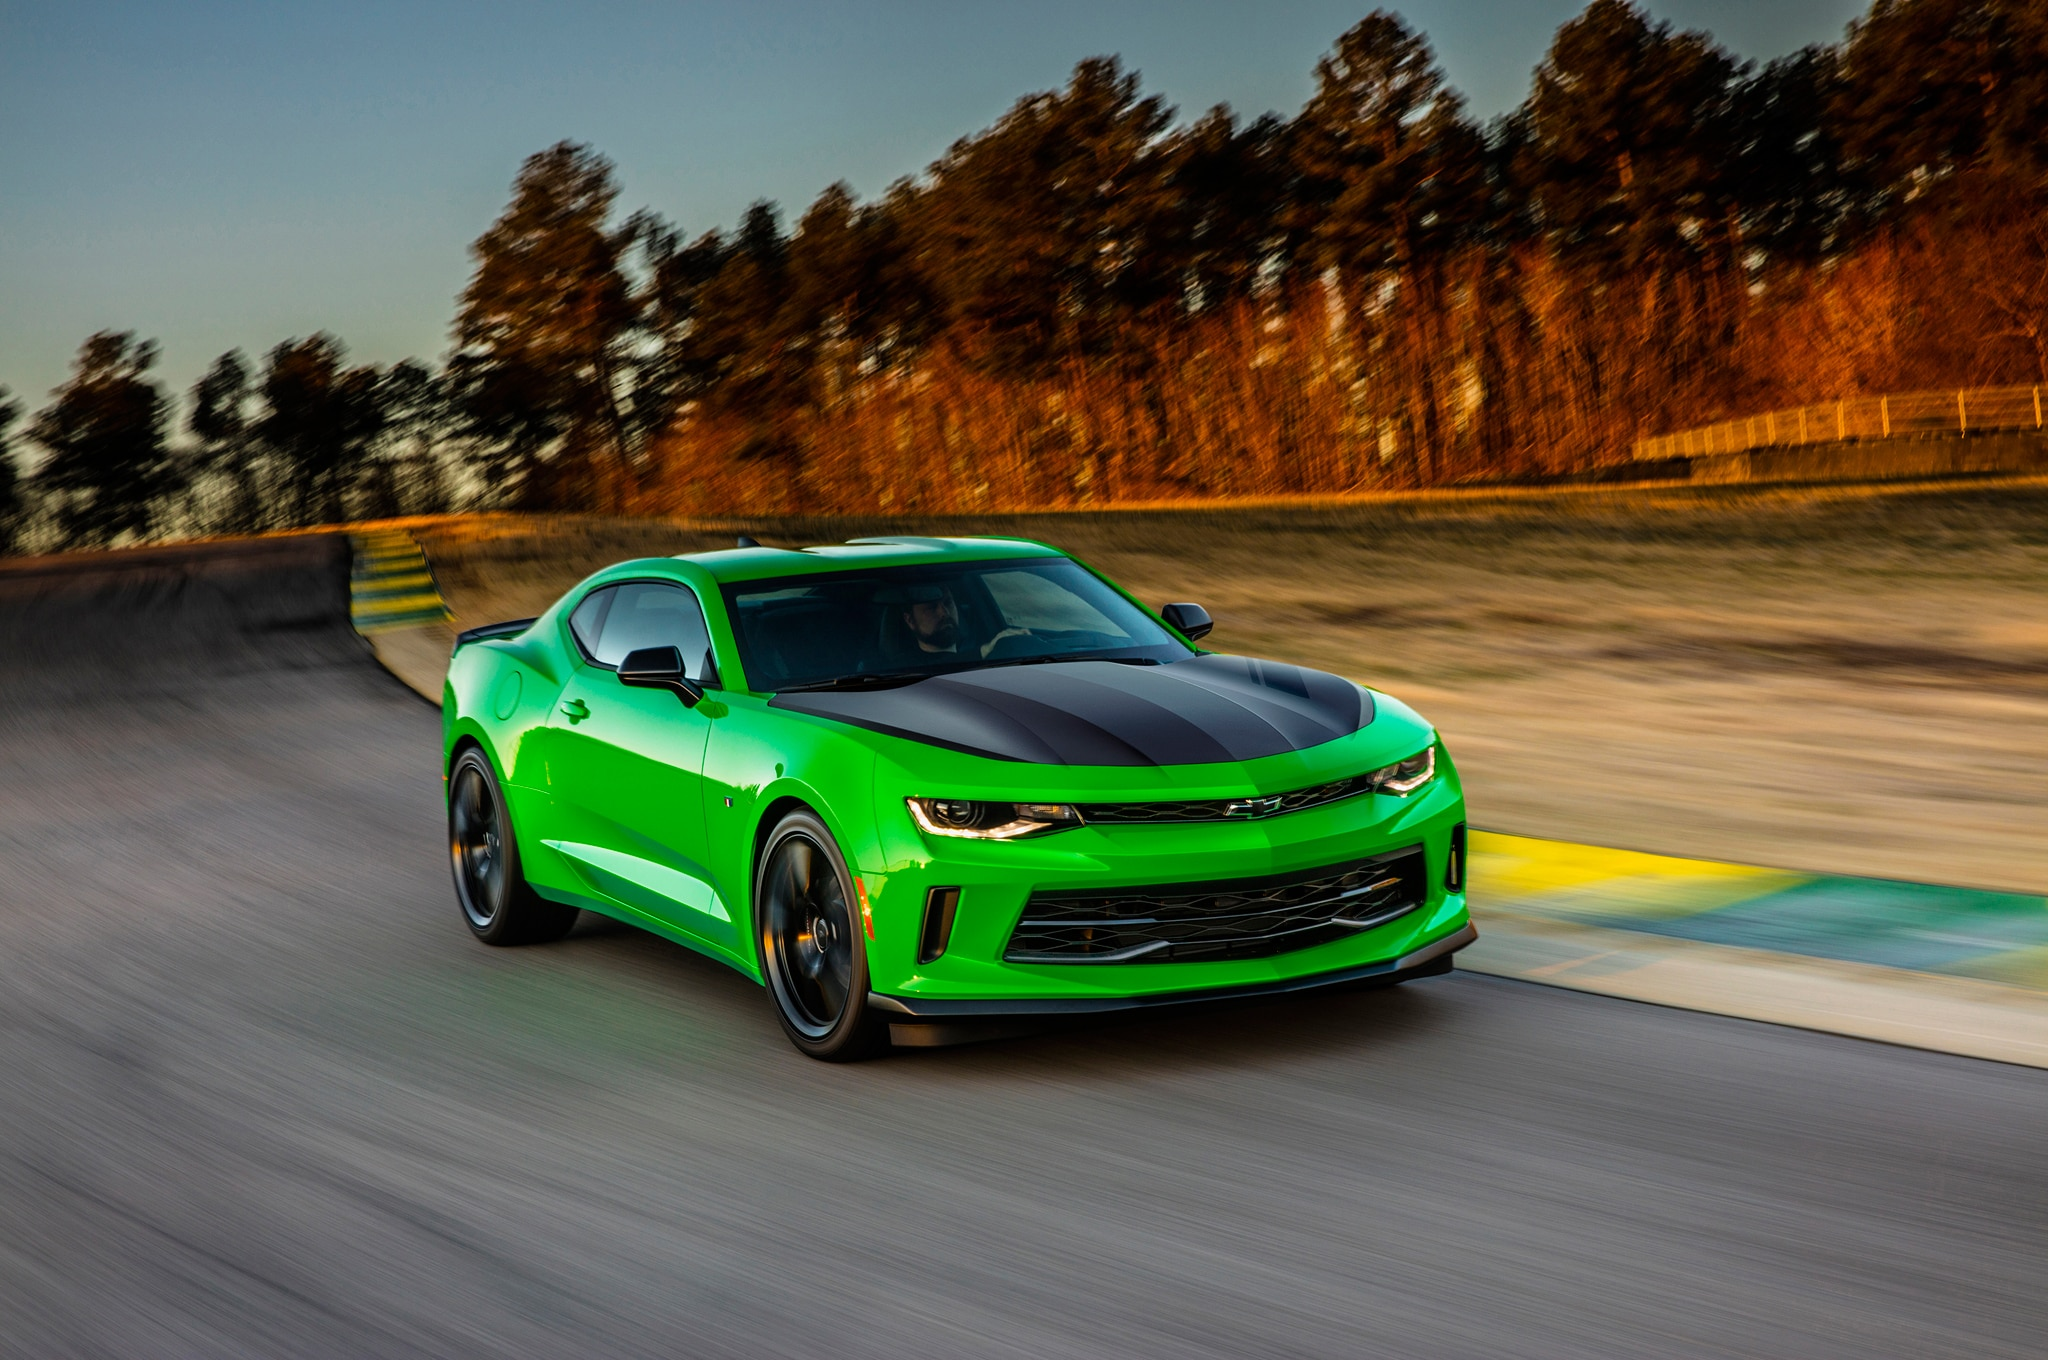 2017 Chevrolet Camaro 1LE front three quarter in motion 02